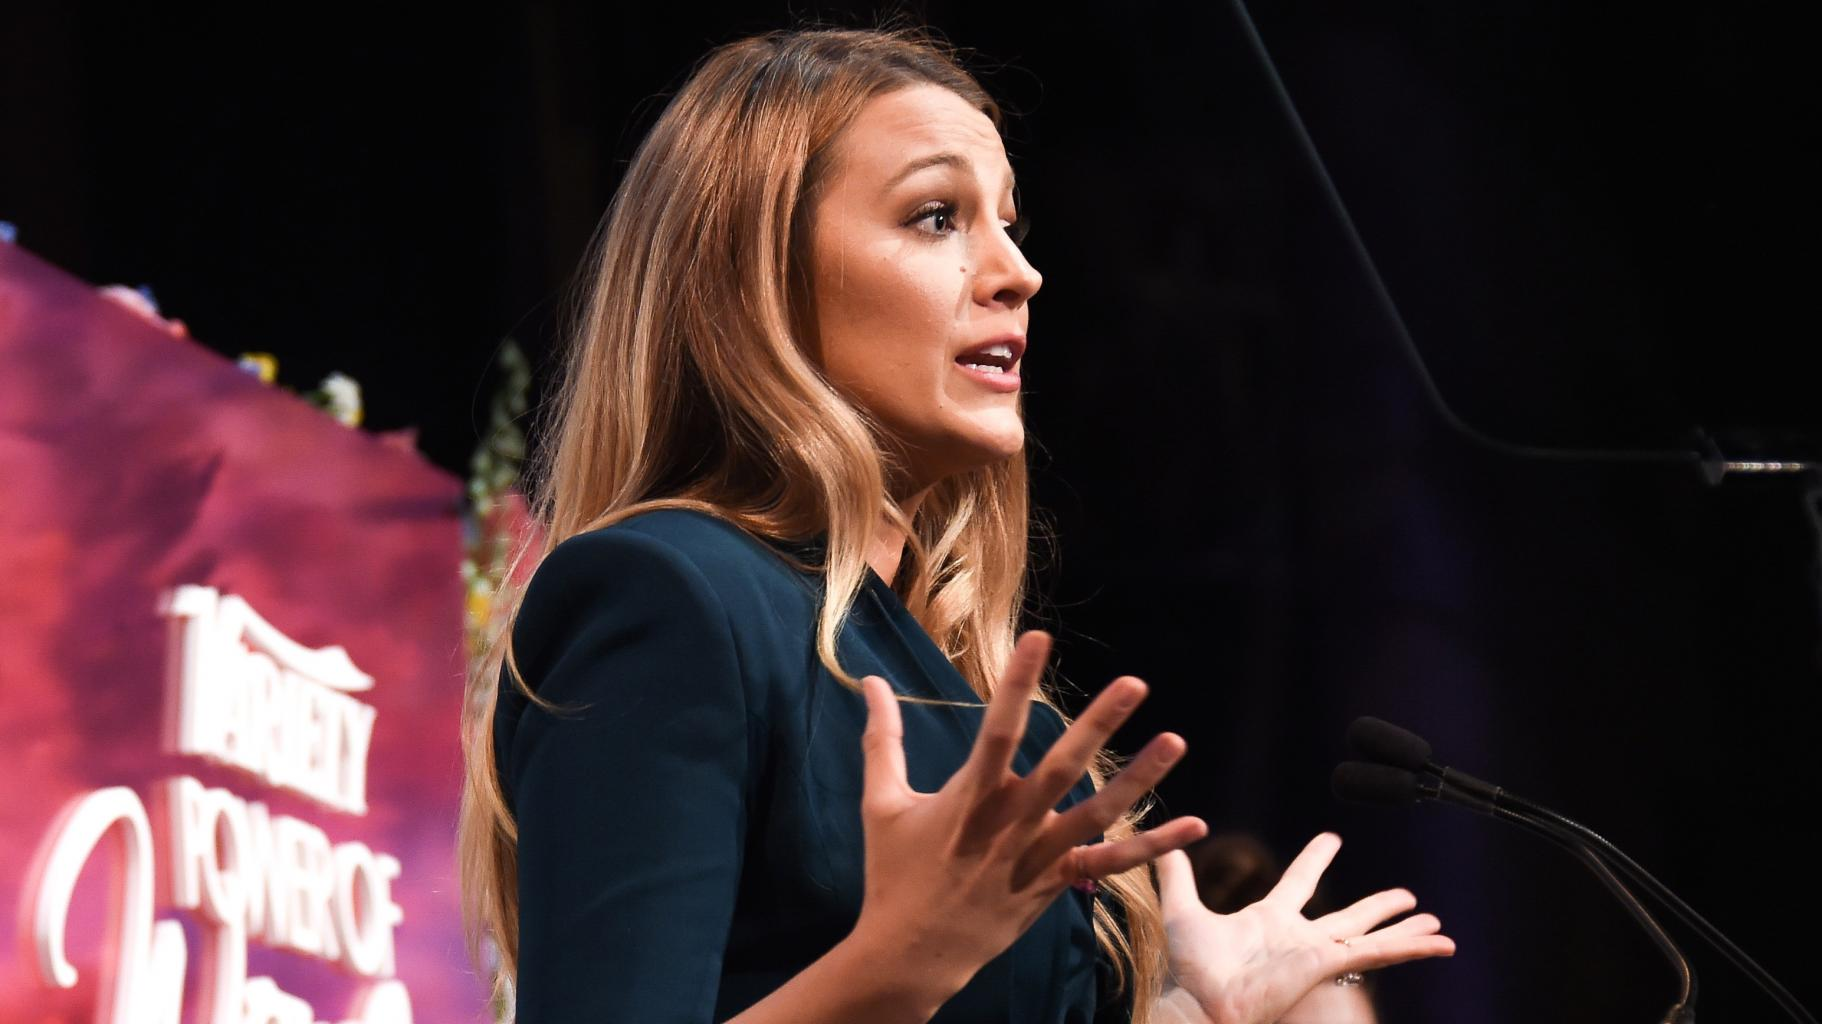 Blake Lively Tells Off Reporter for Asking About Fashion at Variety's Power of Women Event